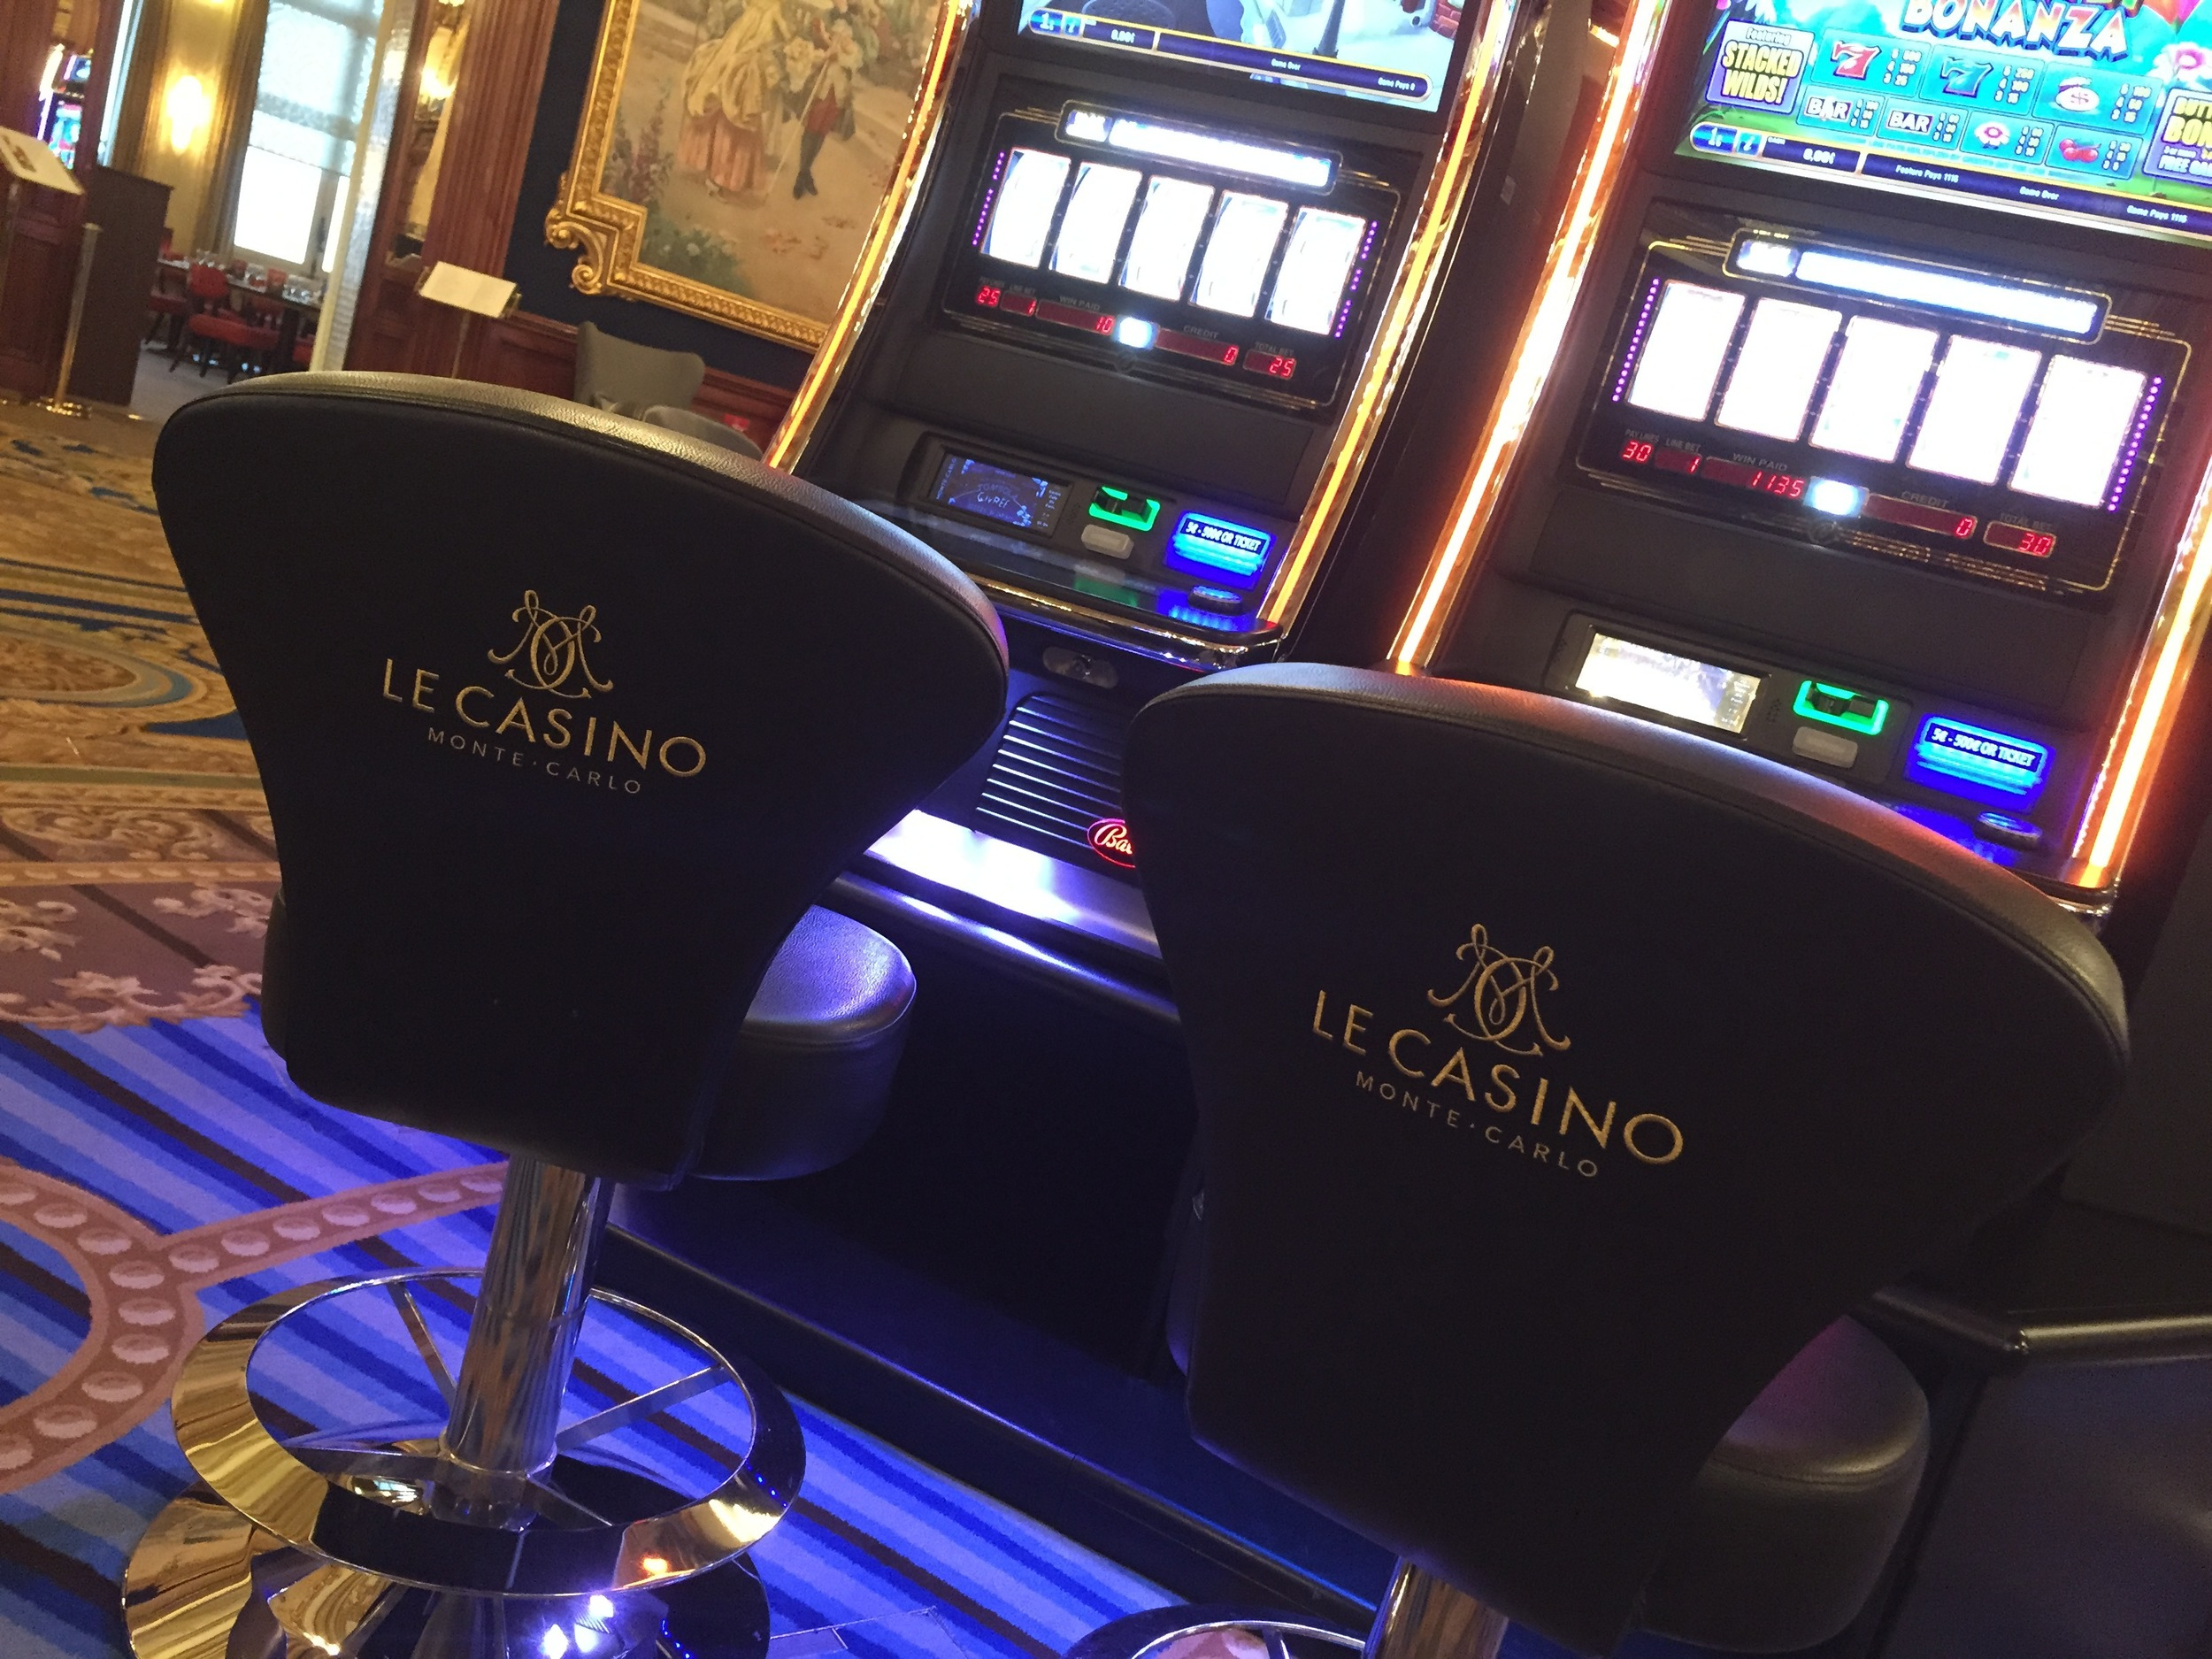 I took a few others, but this was the best photo I was able to snap of the interior of the casino.  Photo by Max Siskind.